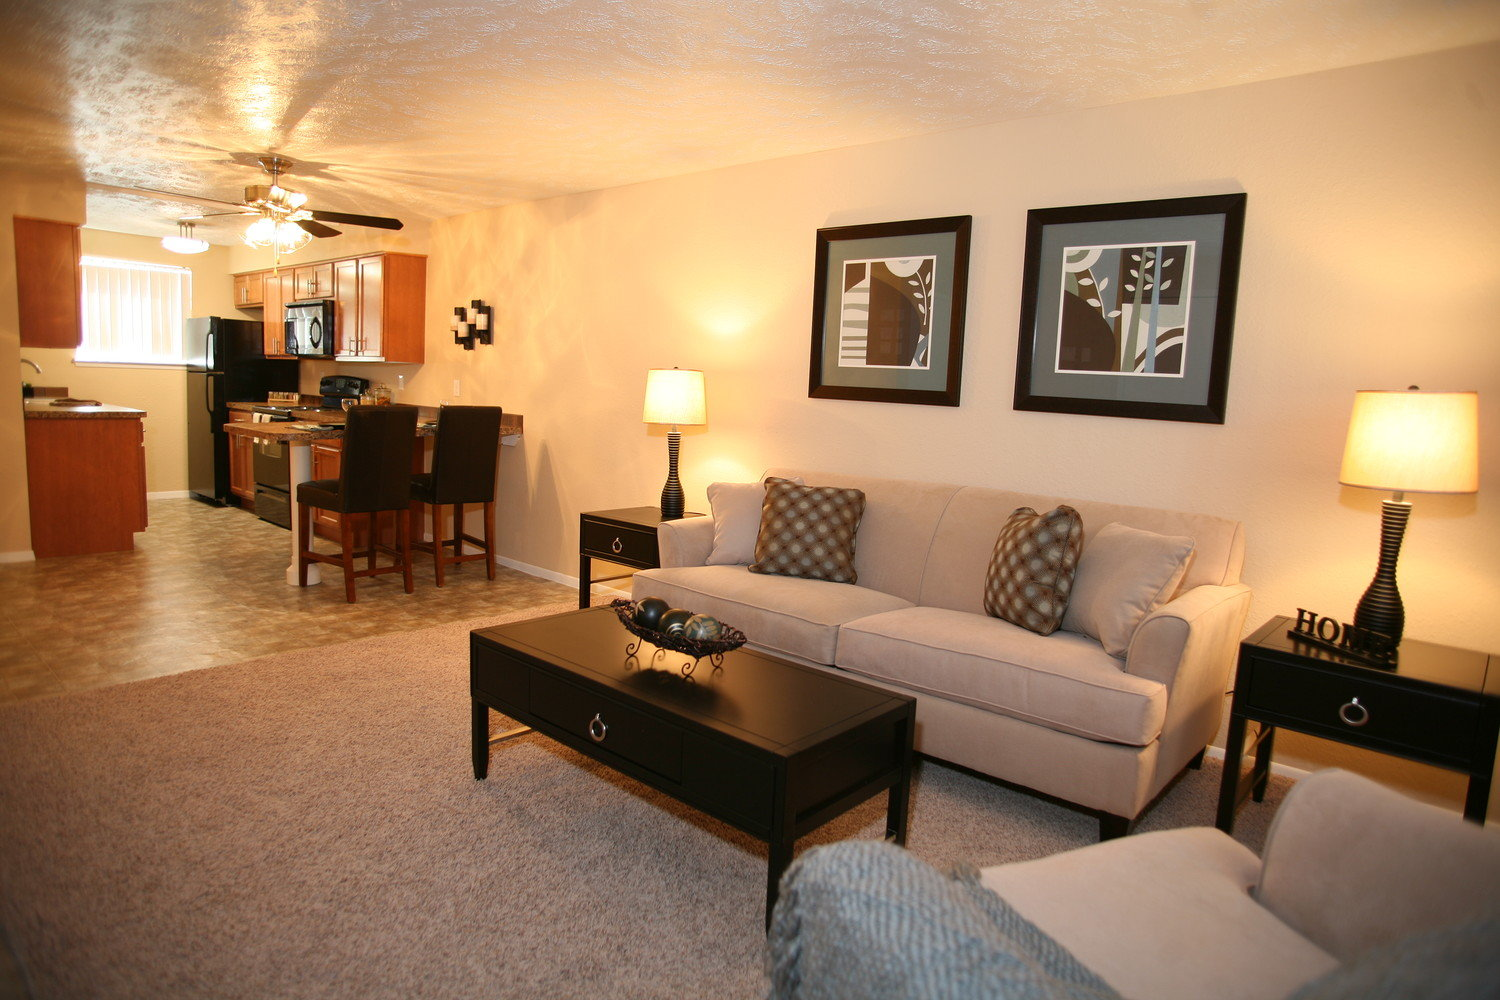 392 Apartments for Rent in Omaha, NE | ApartmentRatings©